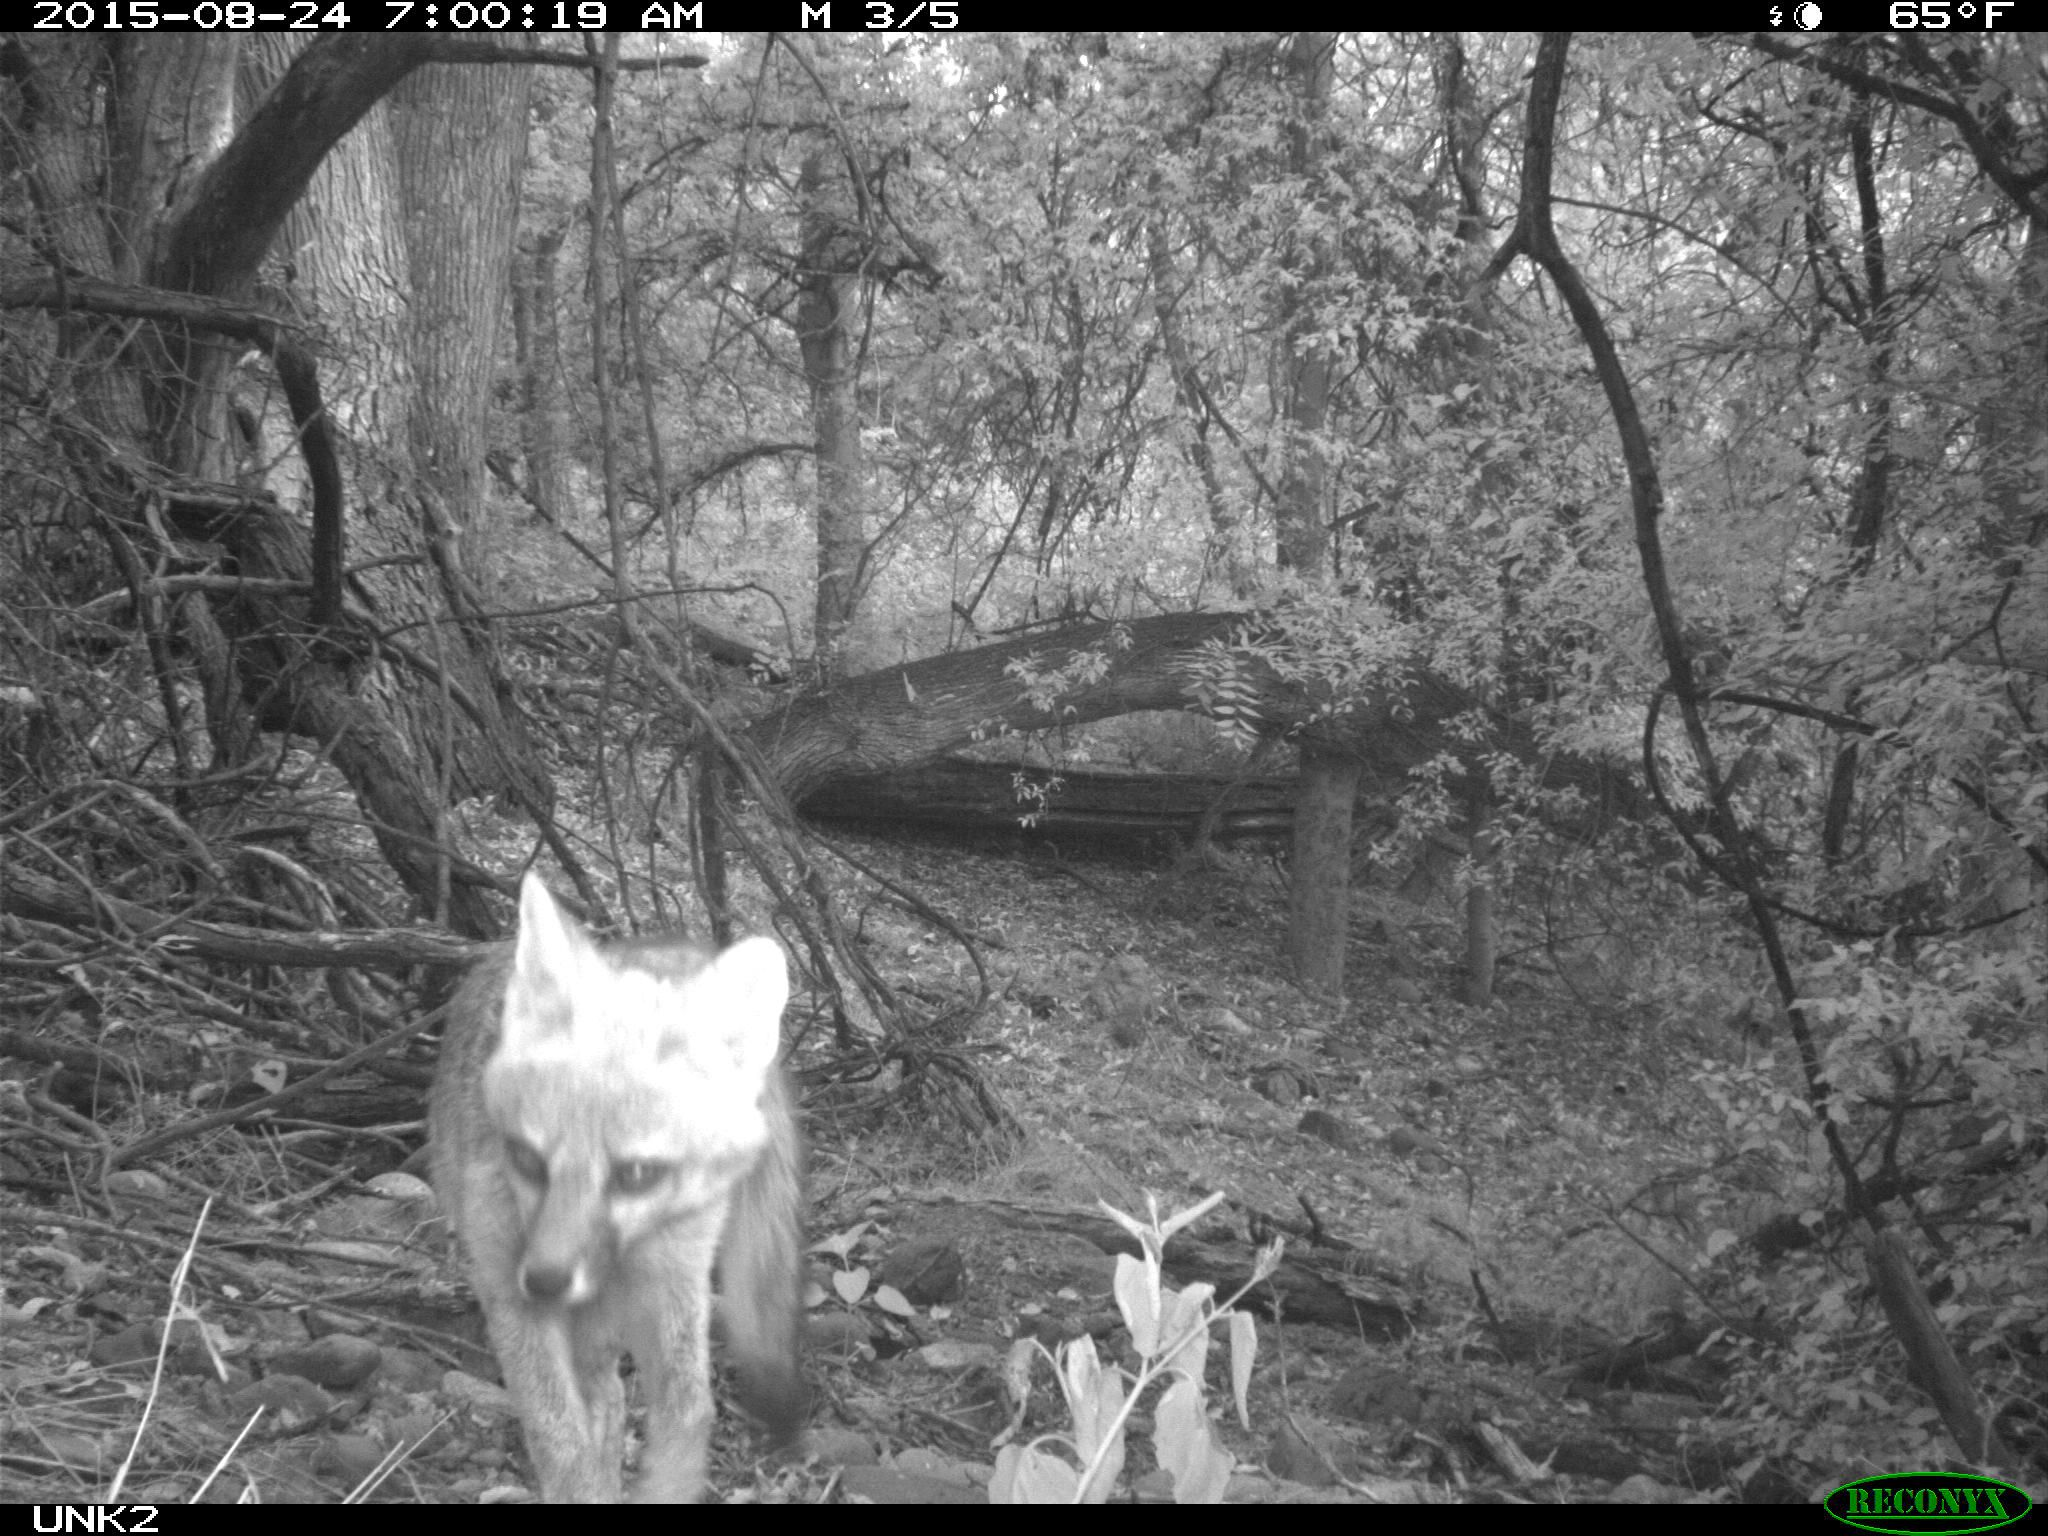 Black and white trail cam photo of a fox walking towards the camera.